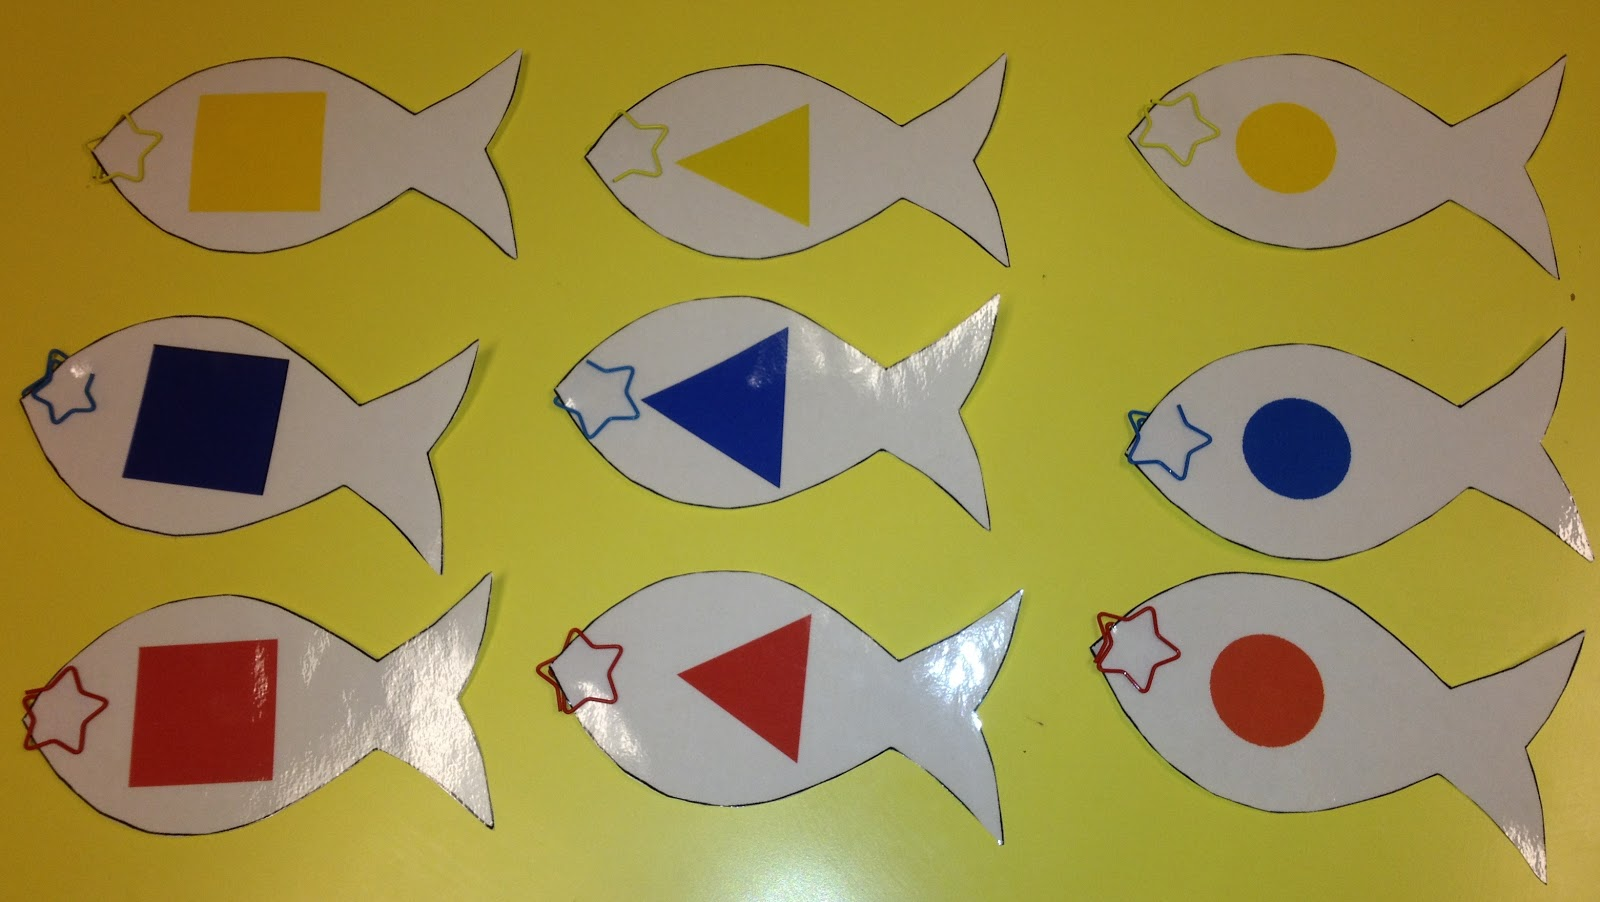 Suzuki Speech Therapy Blog: Fishing Game - colors, shapes, two ...